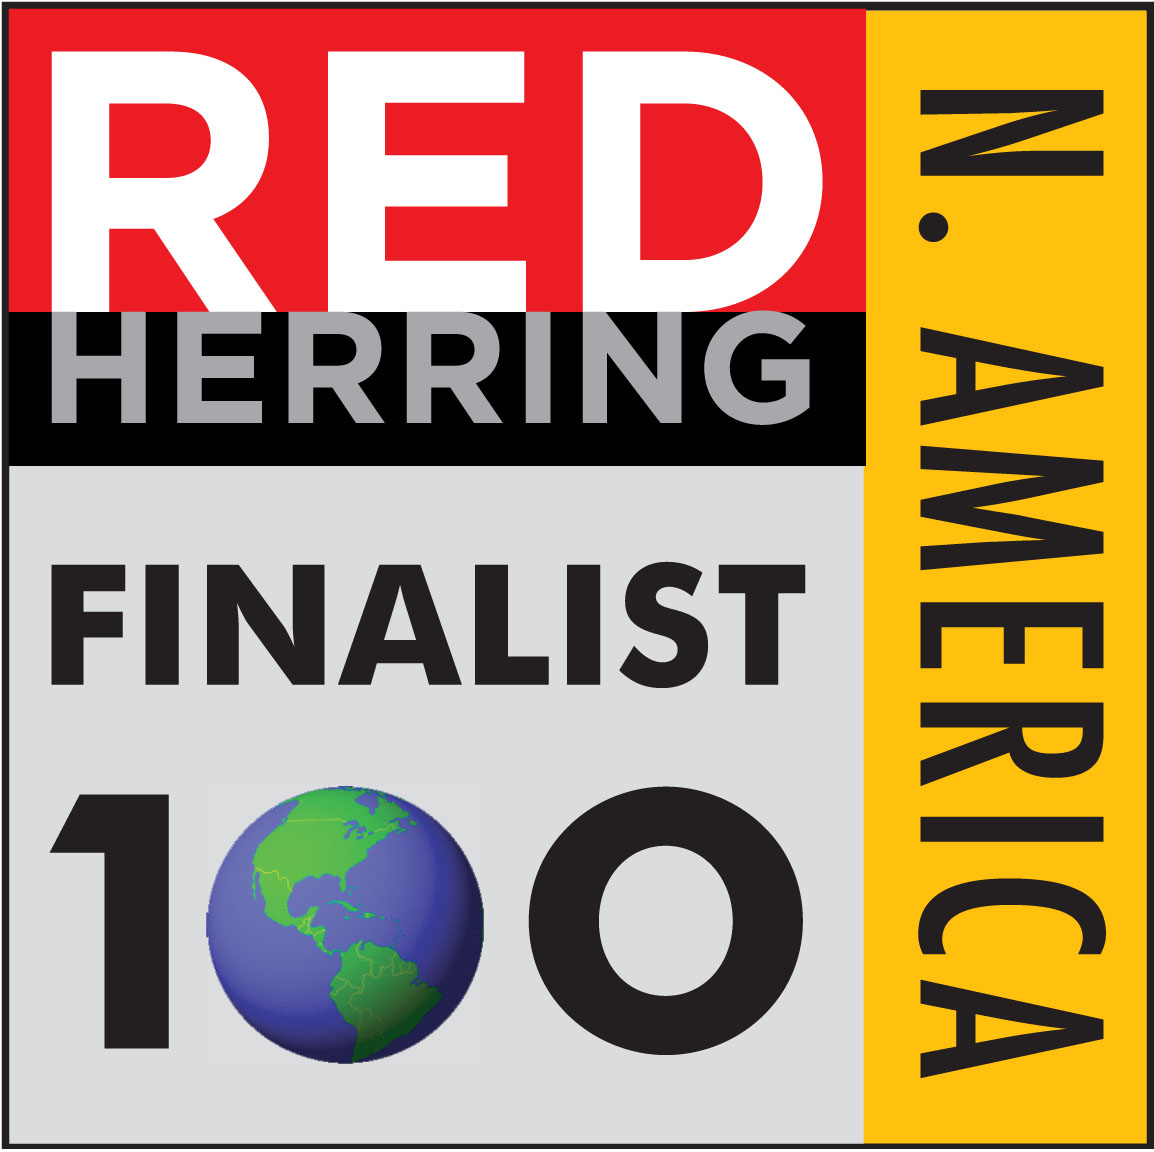 Hughes Systique is a Red Herring North America Top 100 finalist